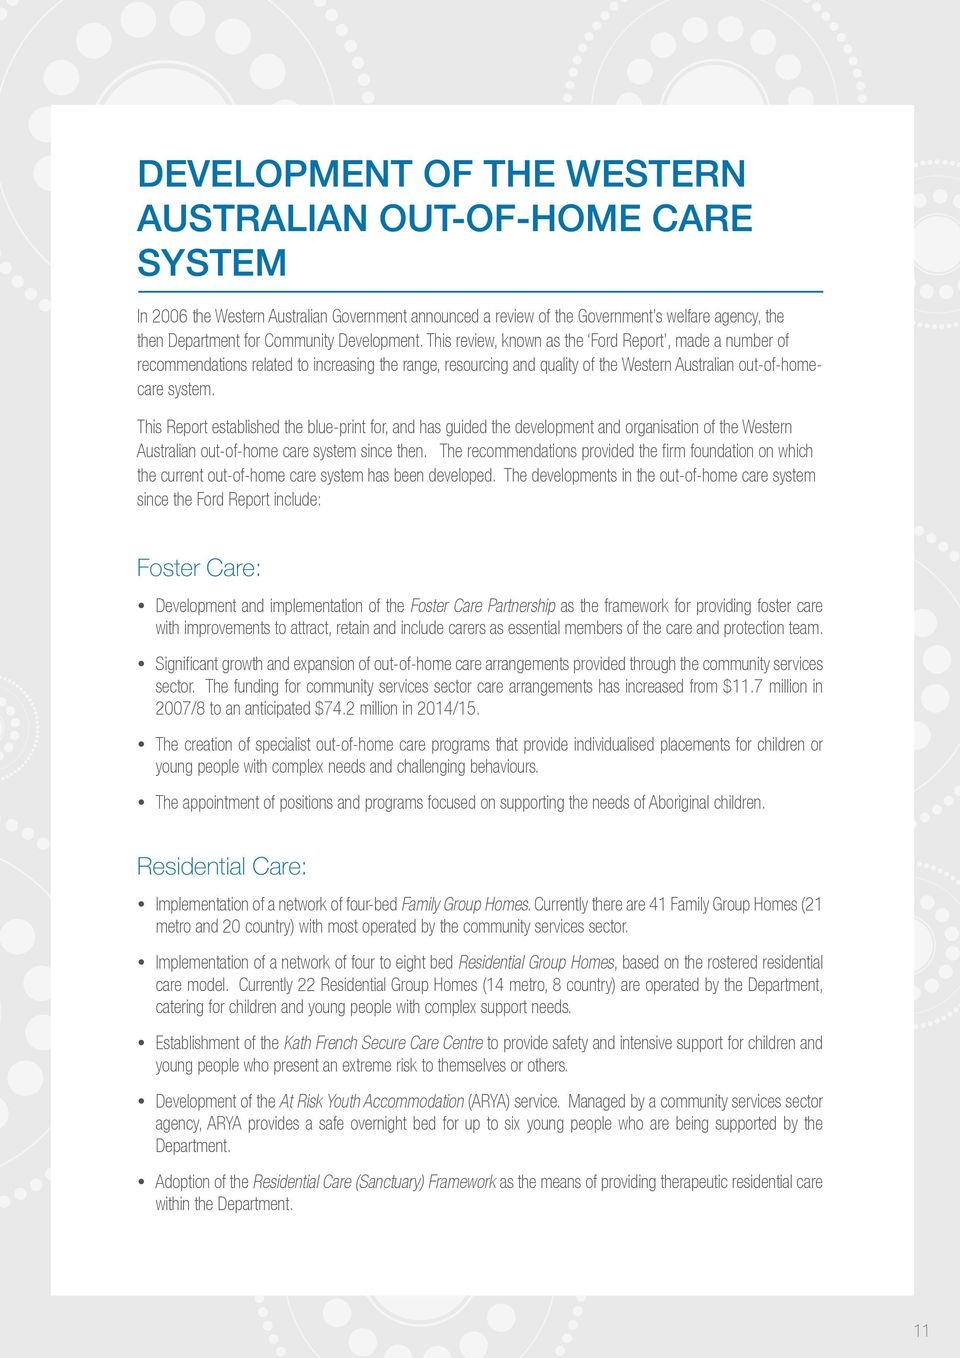 This Report established the blue-print for, and has guided the development and organisation of the Western Australian out-of-home care system since then.